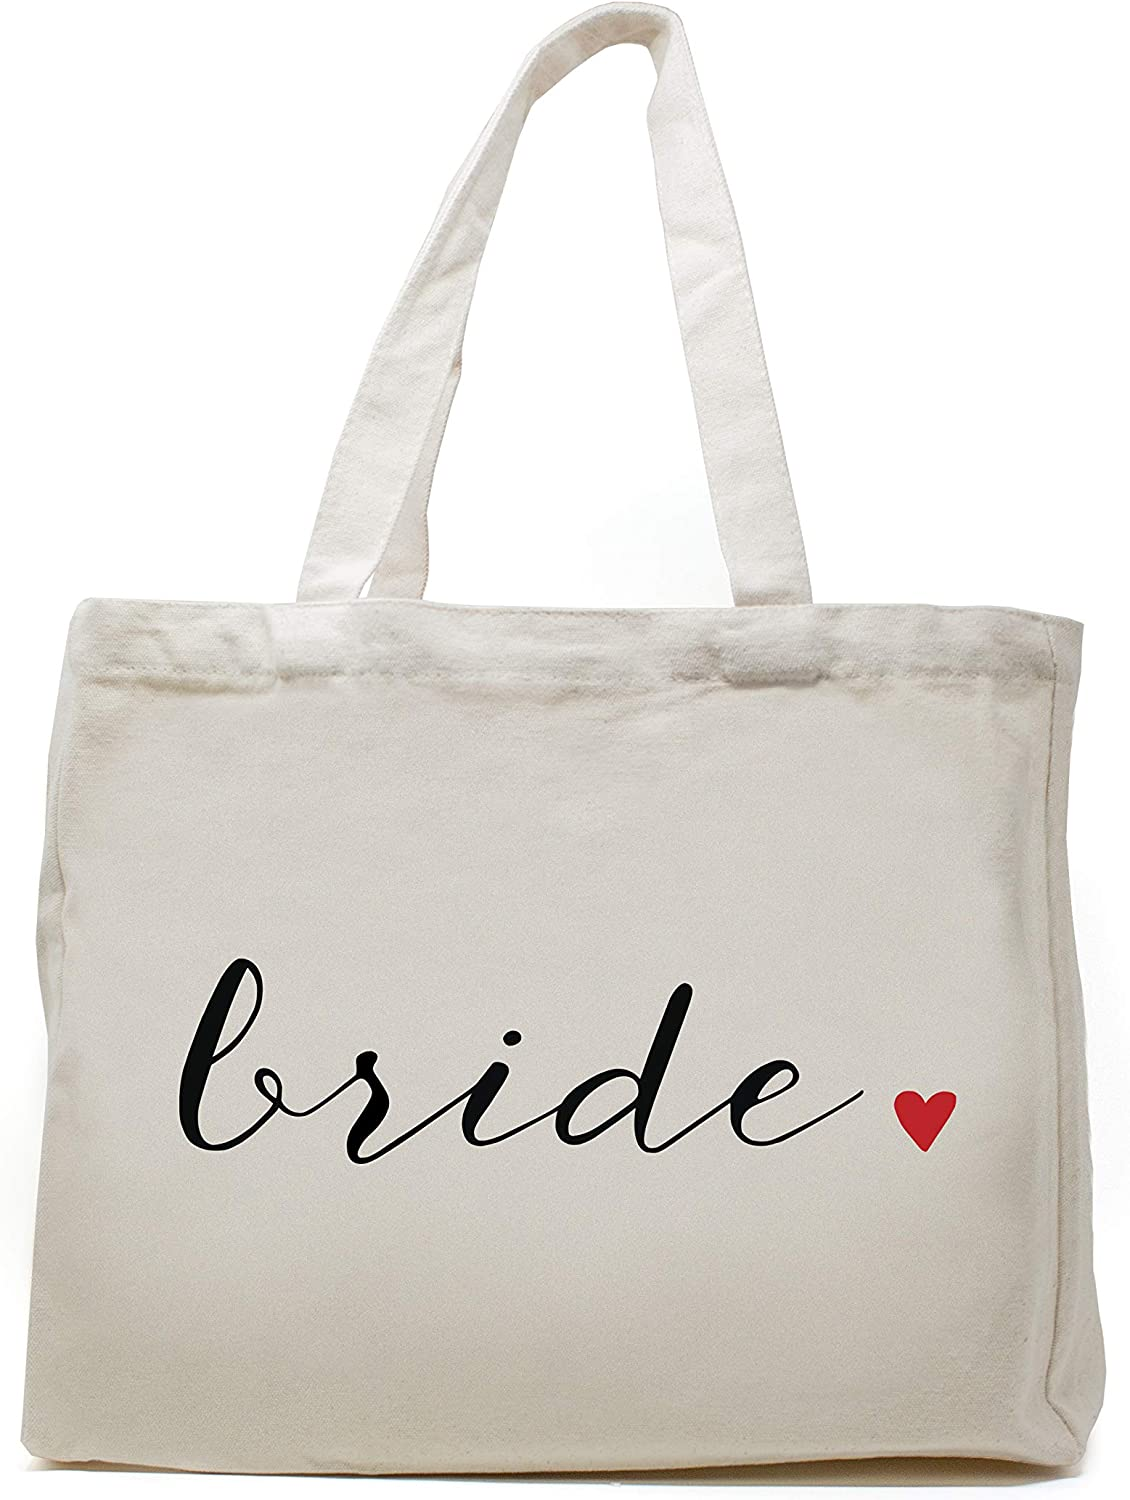 Prazoli Bridal Tote excellence Bag - New sales Women Engagement For Sh Gifts